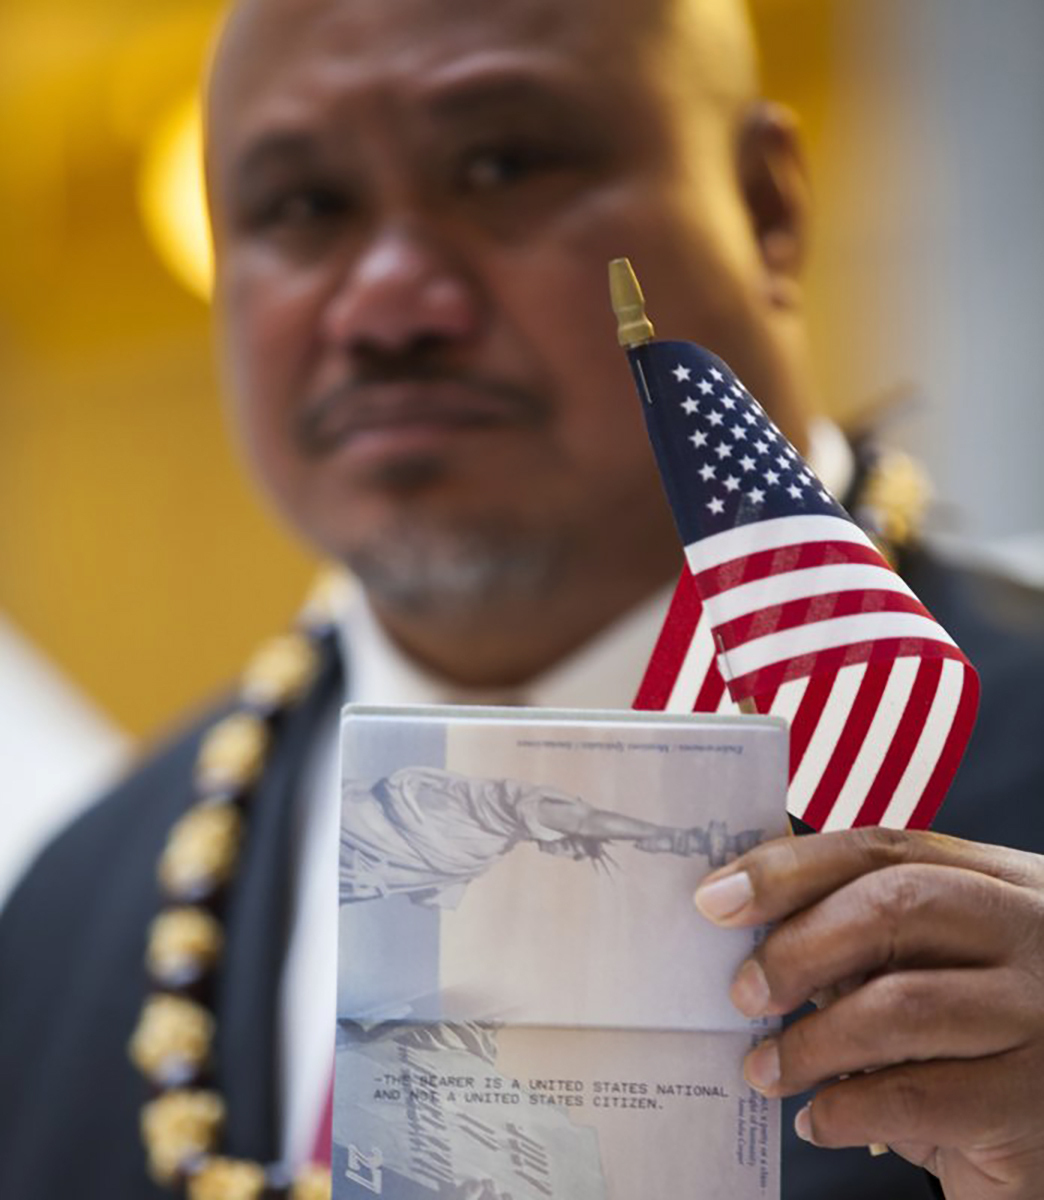 American Samoans' Citizenship Status Still In Limbo After Judge Issues Stay